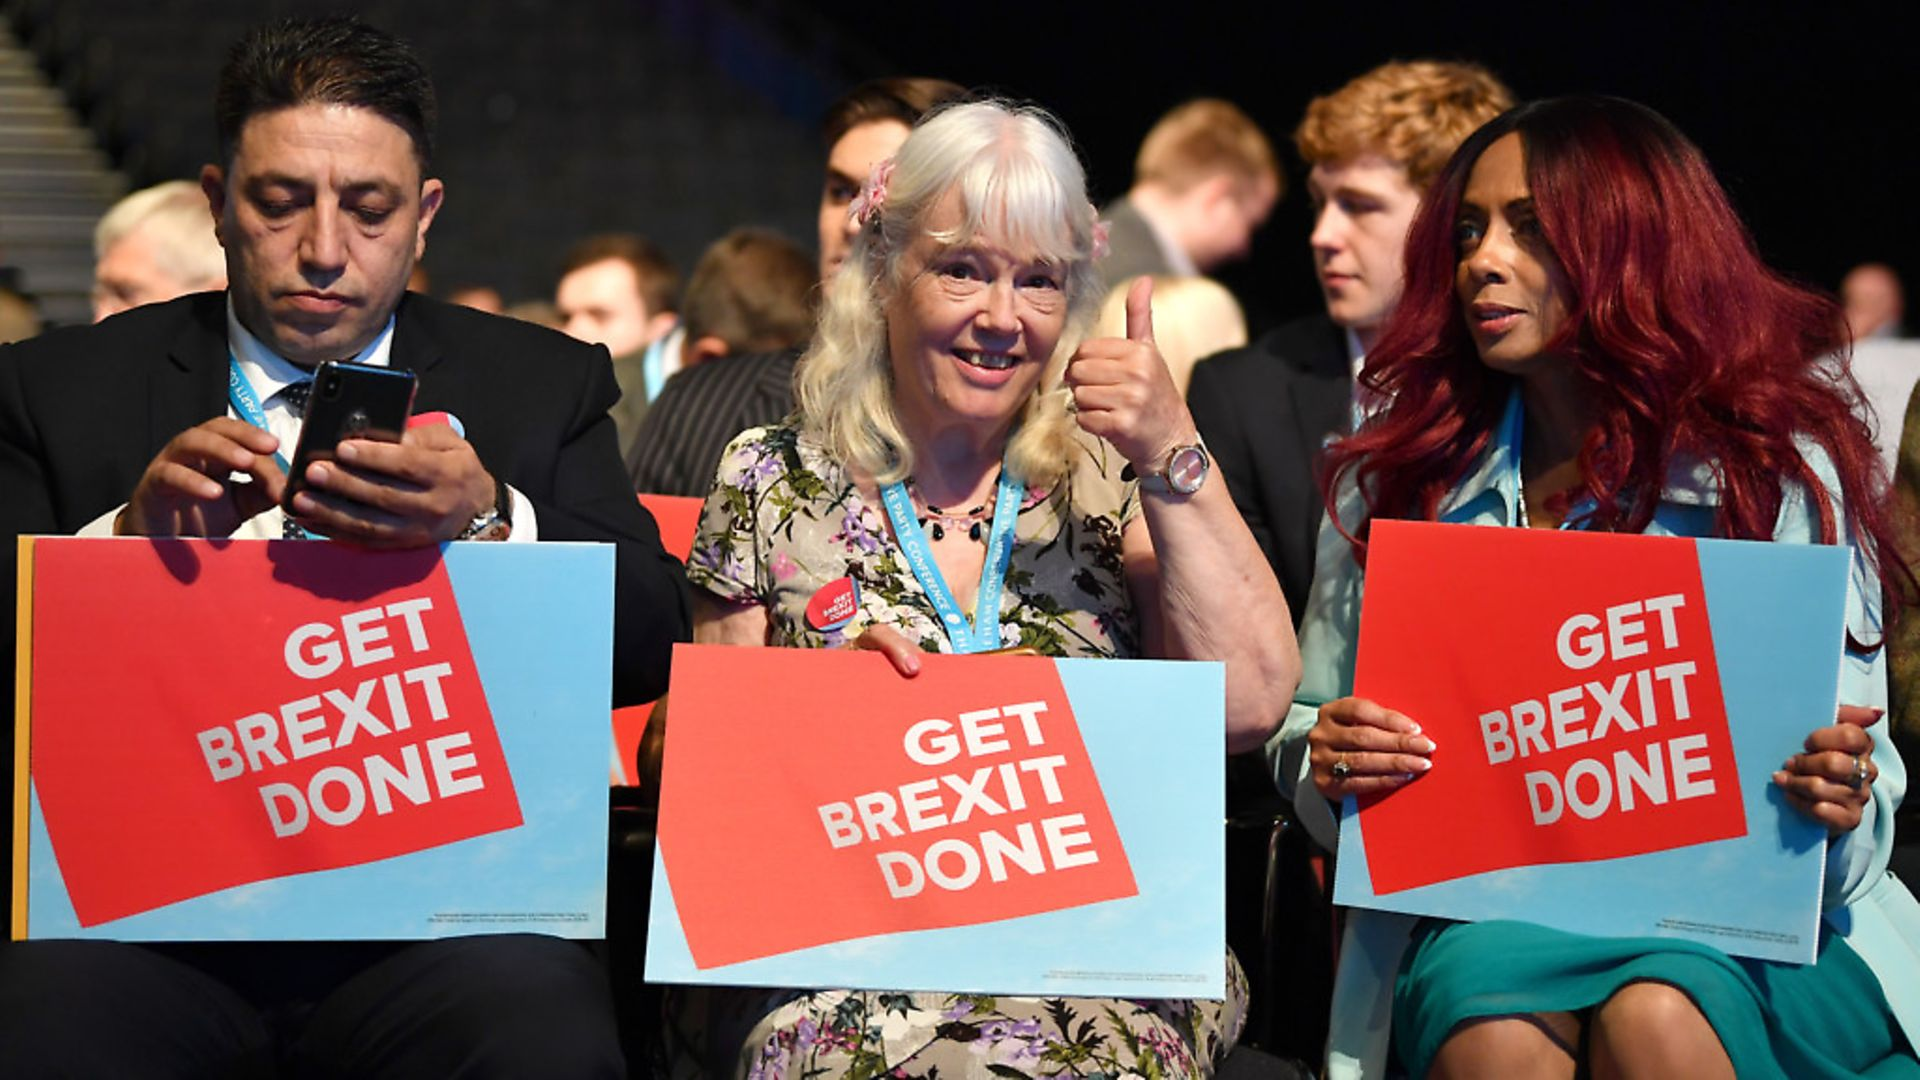 """Delegates hold """"Get Brexit Done"""" posters during the first day of Conservative Party Conference 2019. (Photo by Jeff J Mitchell/Getty Images) - Credit: Getty Images"""